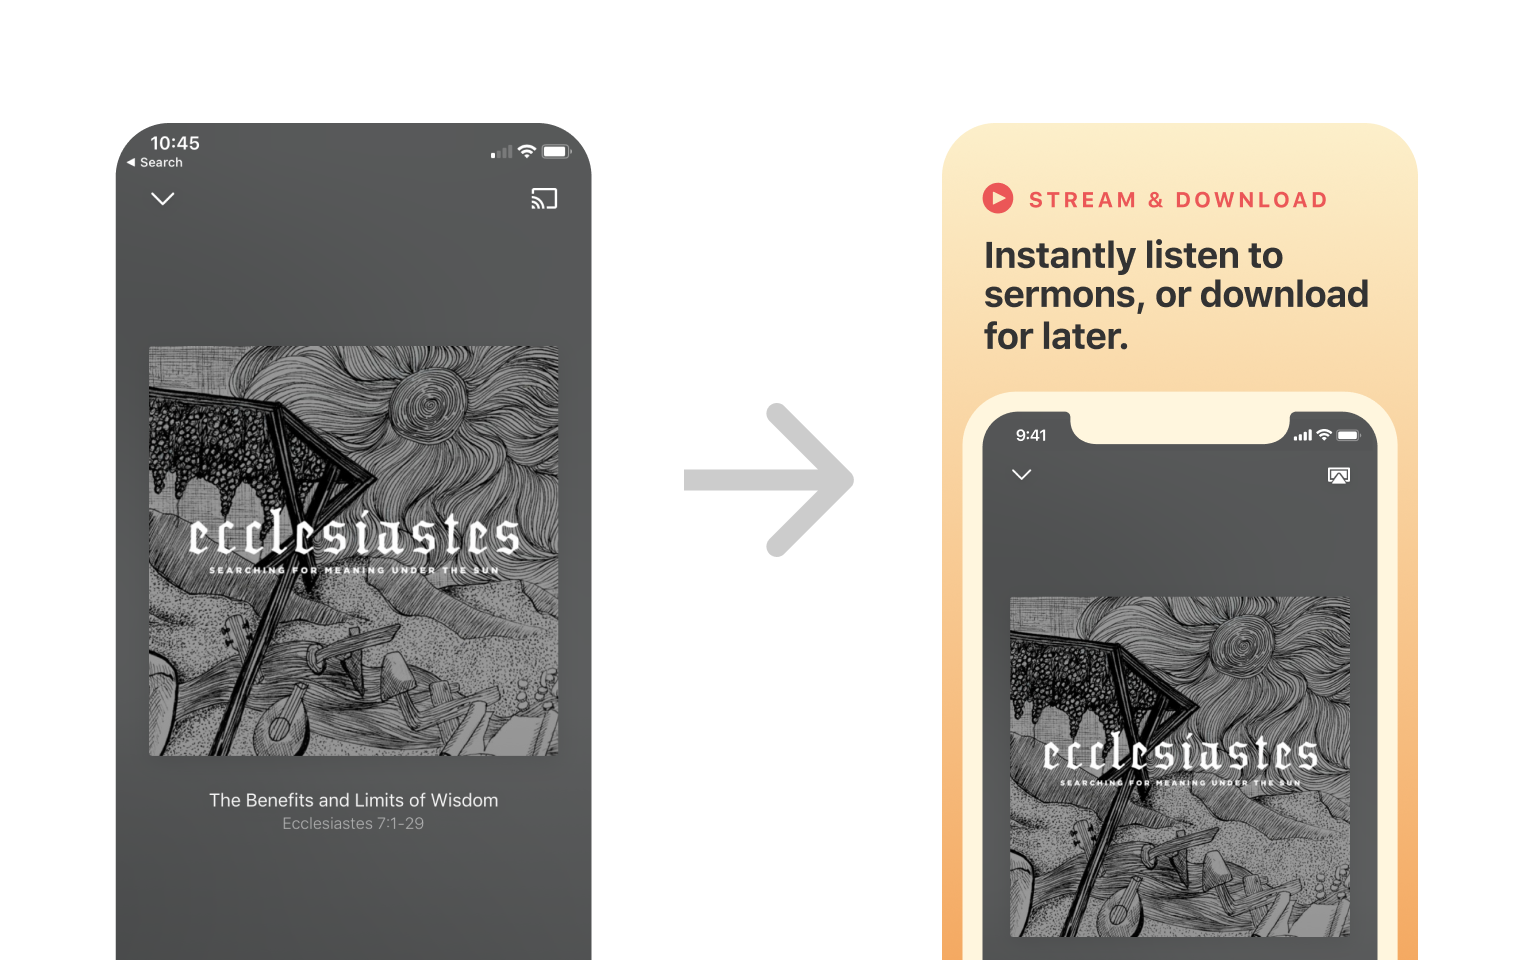 More impact - According to research, after your app reviews, screenshots are the first thing visitors look at. Create more impact with custom, beautifully designed App Store images.